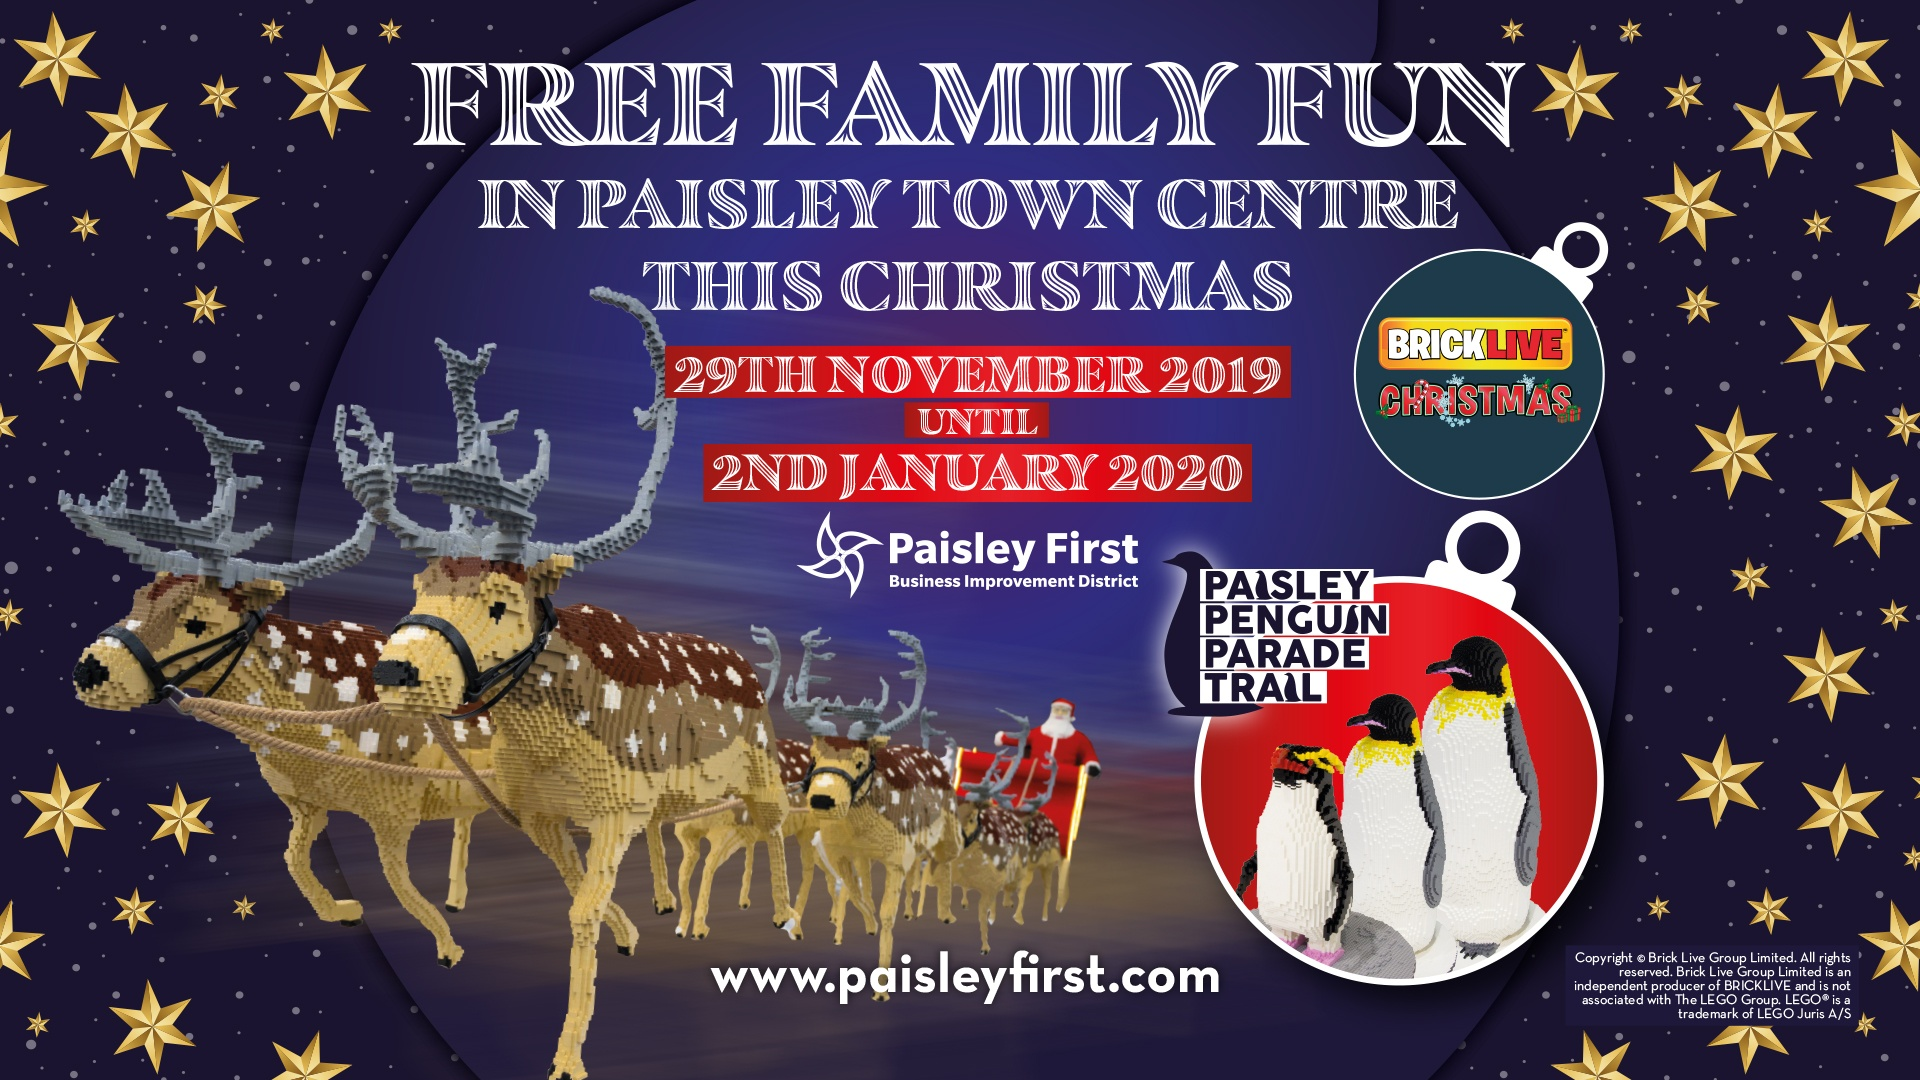 FACEBOOK-EVENT-Paisley-First-BRICKLIVE-1920x1080px-15-11-19